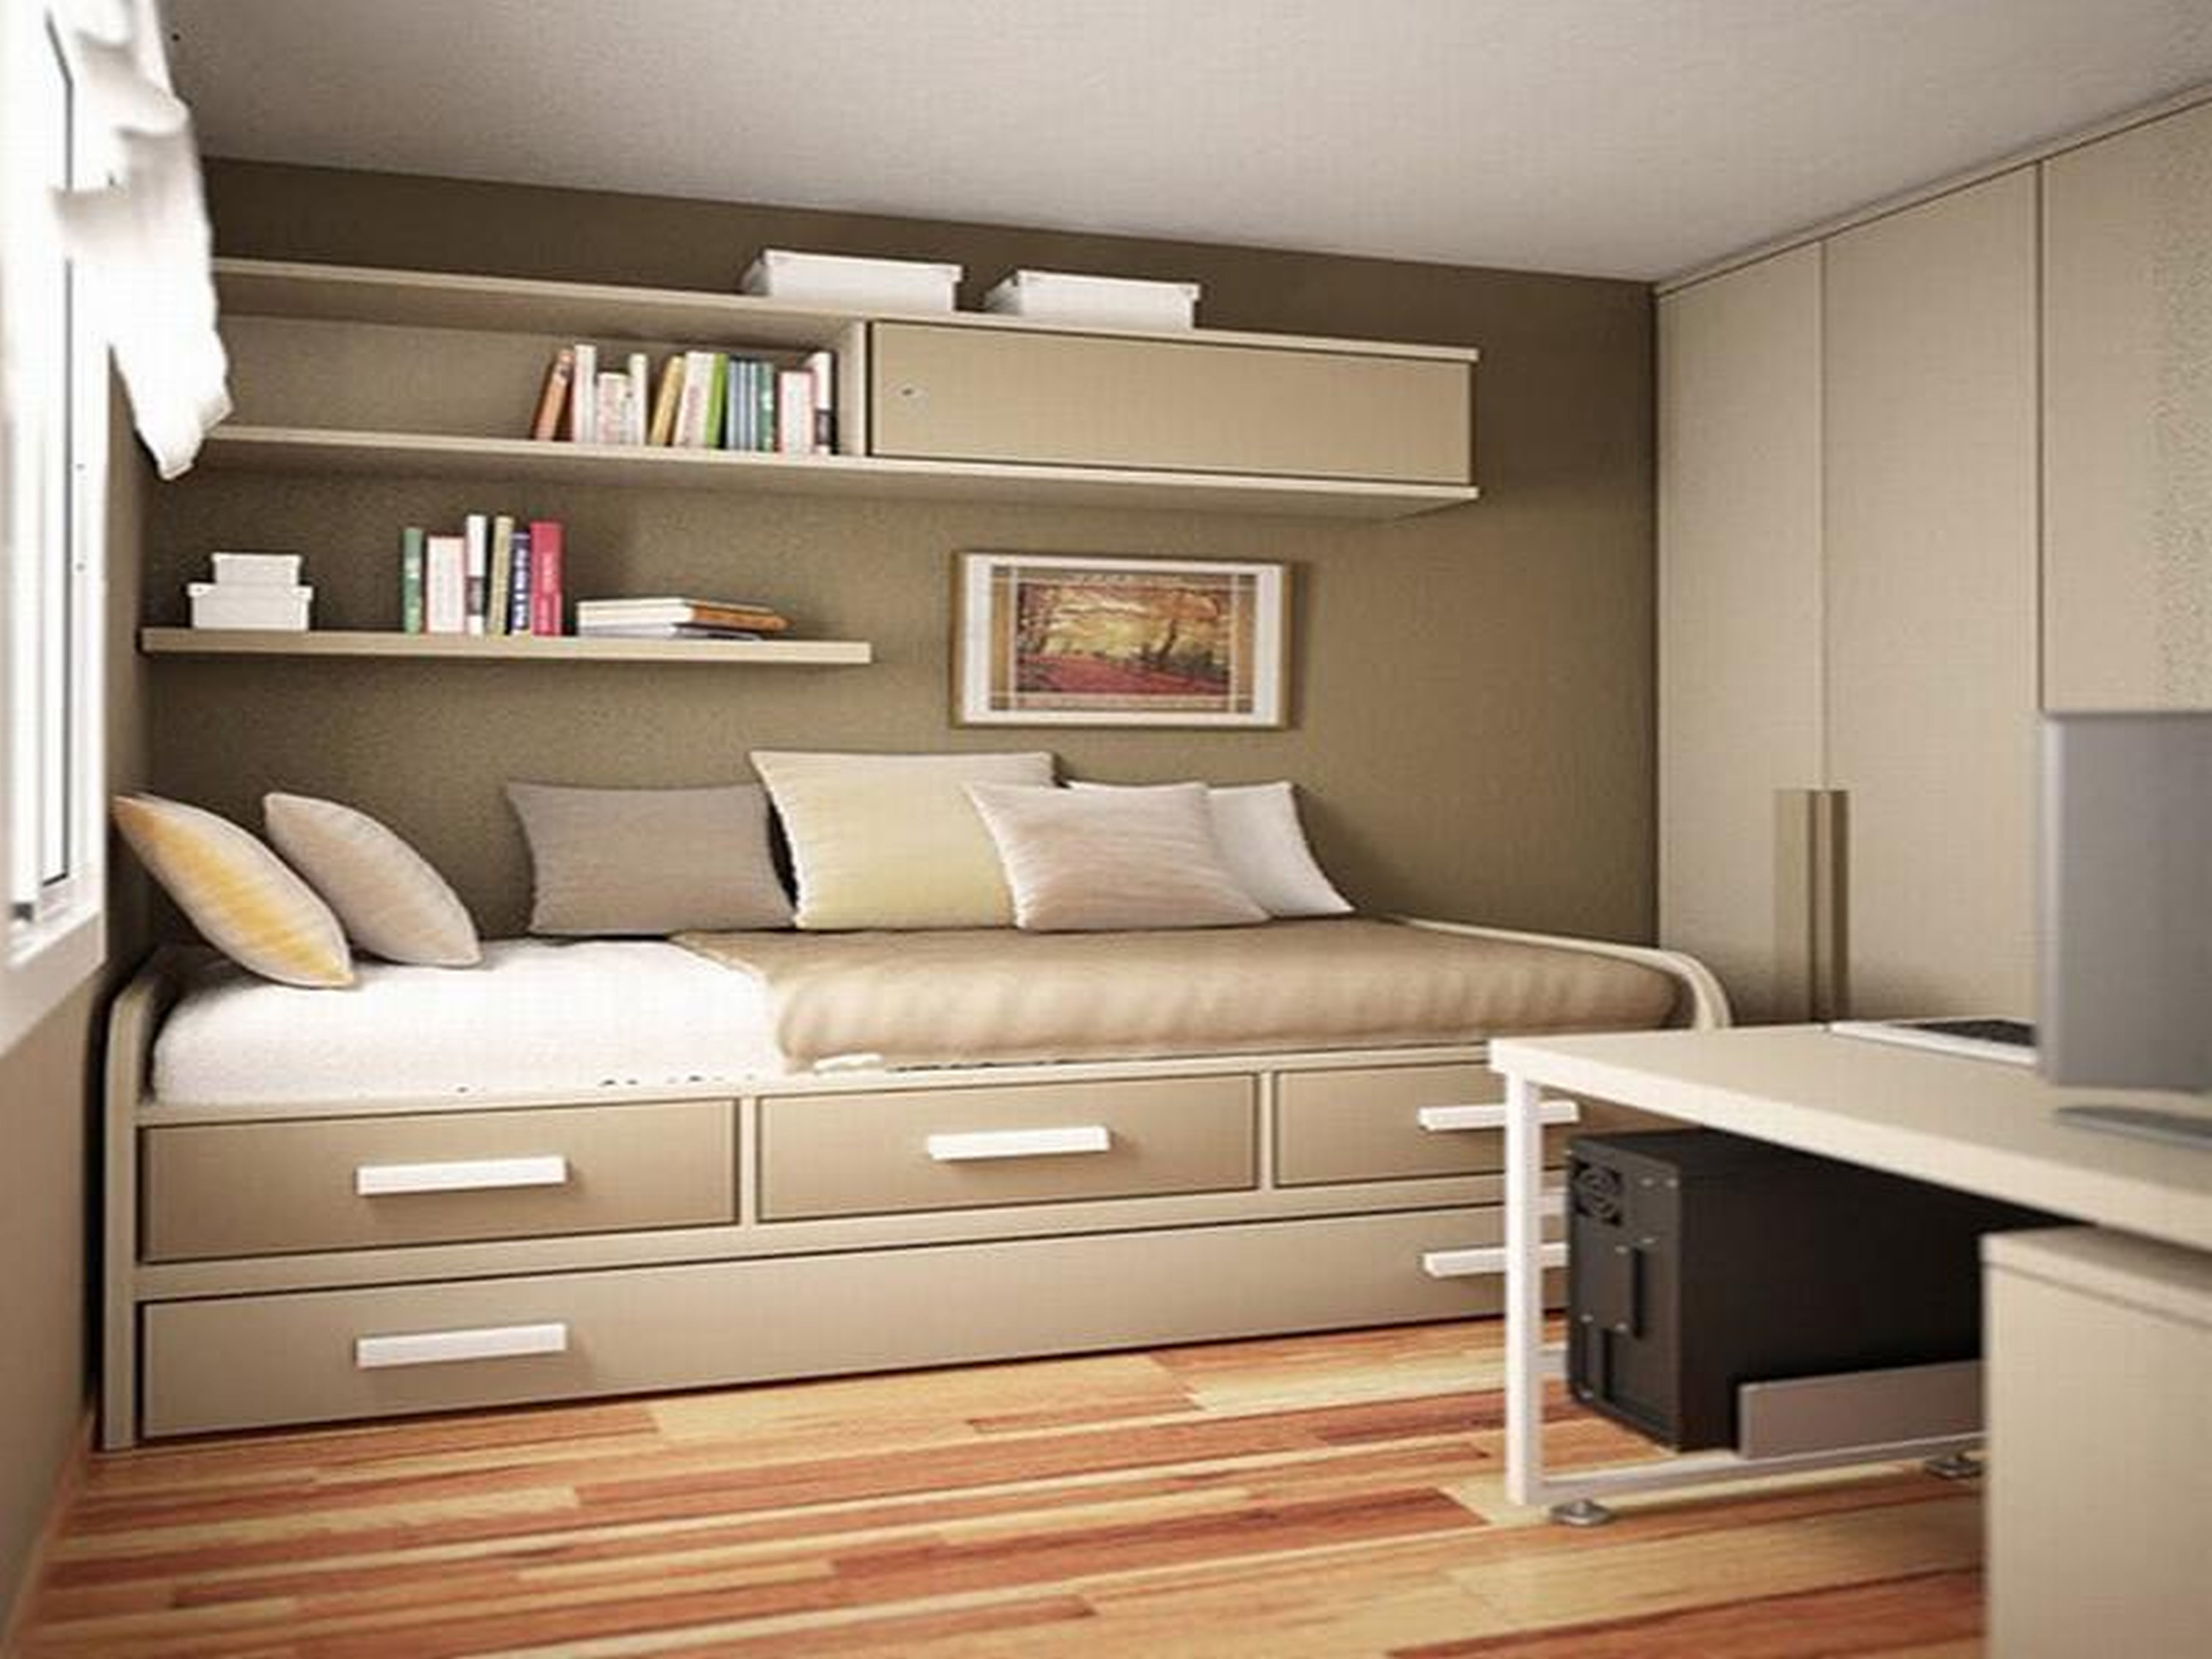 Bed Designs For Small Bedroom Captivating Single Bed Designs For Small Rooms  Small Bedroom  Pinterest Inspiration